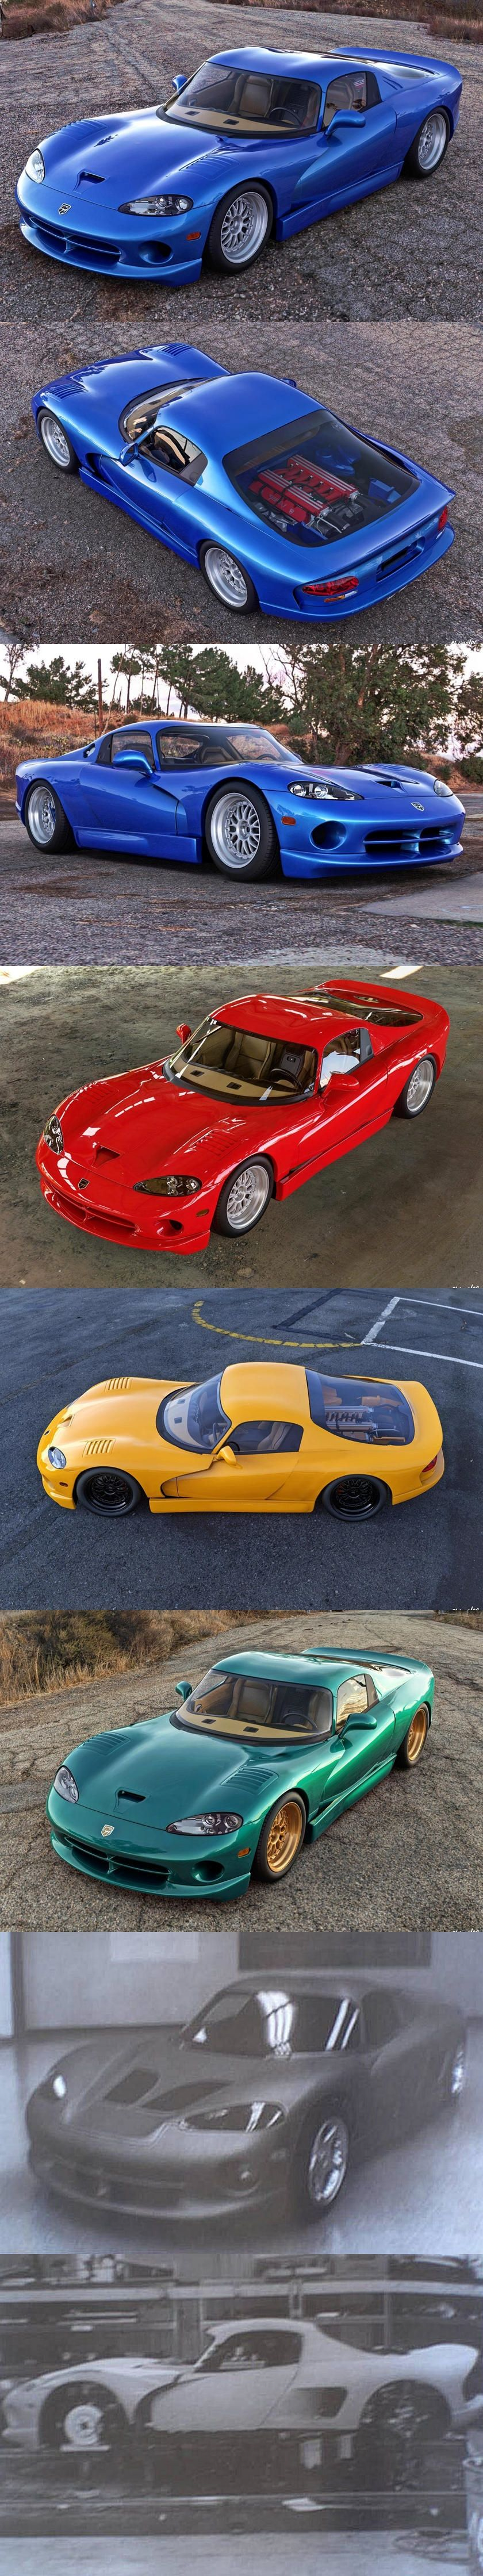 This Is The Mid Engine Dodge Viper Chrysler Refused To Make Dodge Viper Chrysler Super Cars